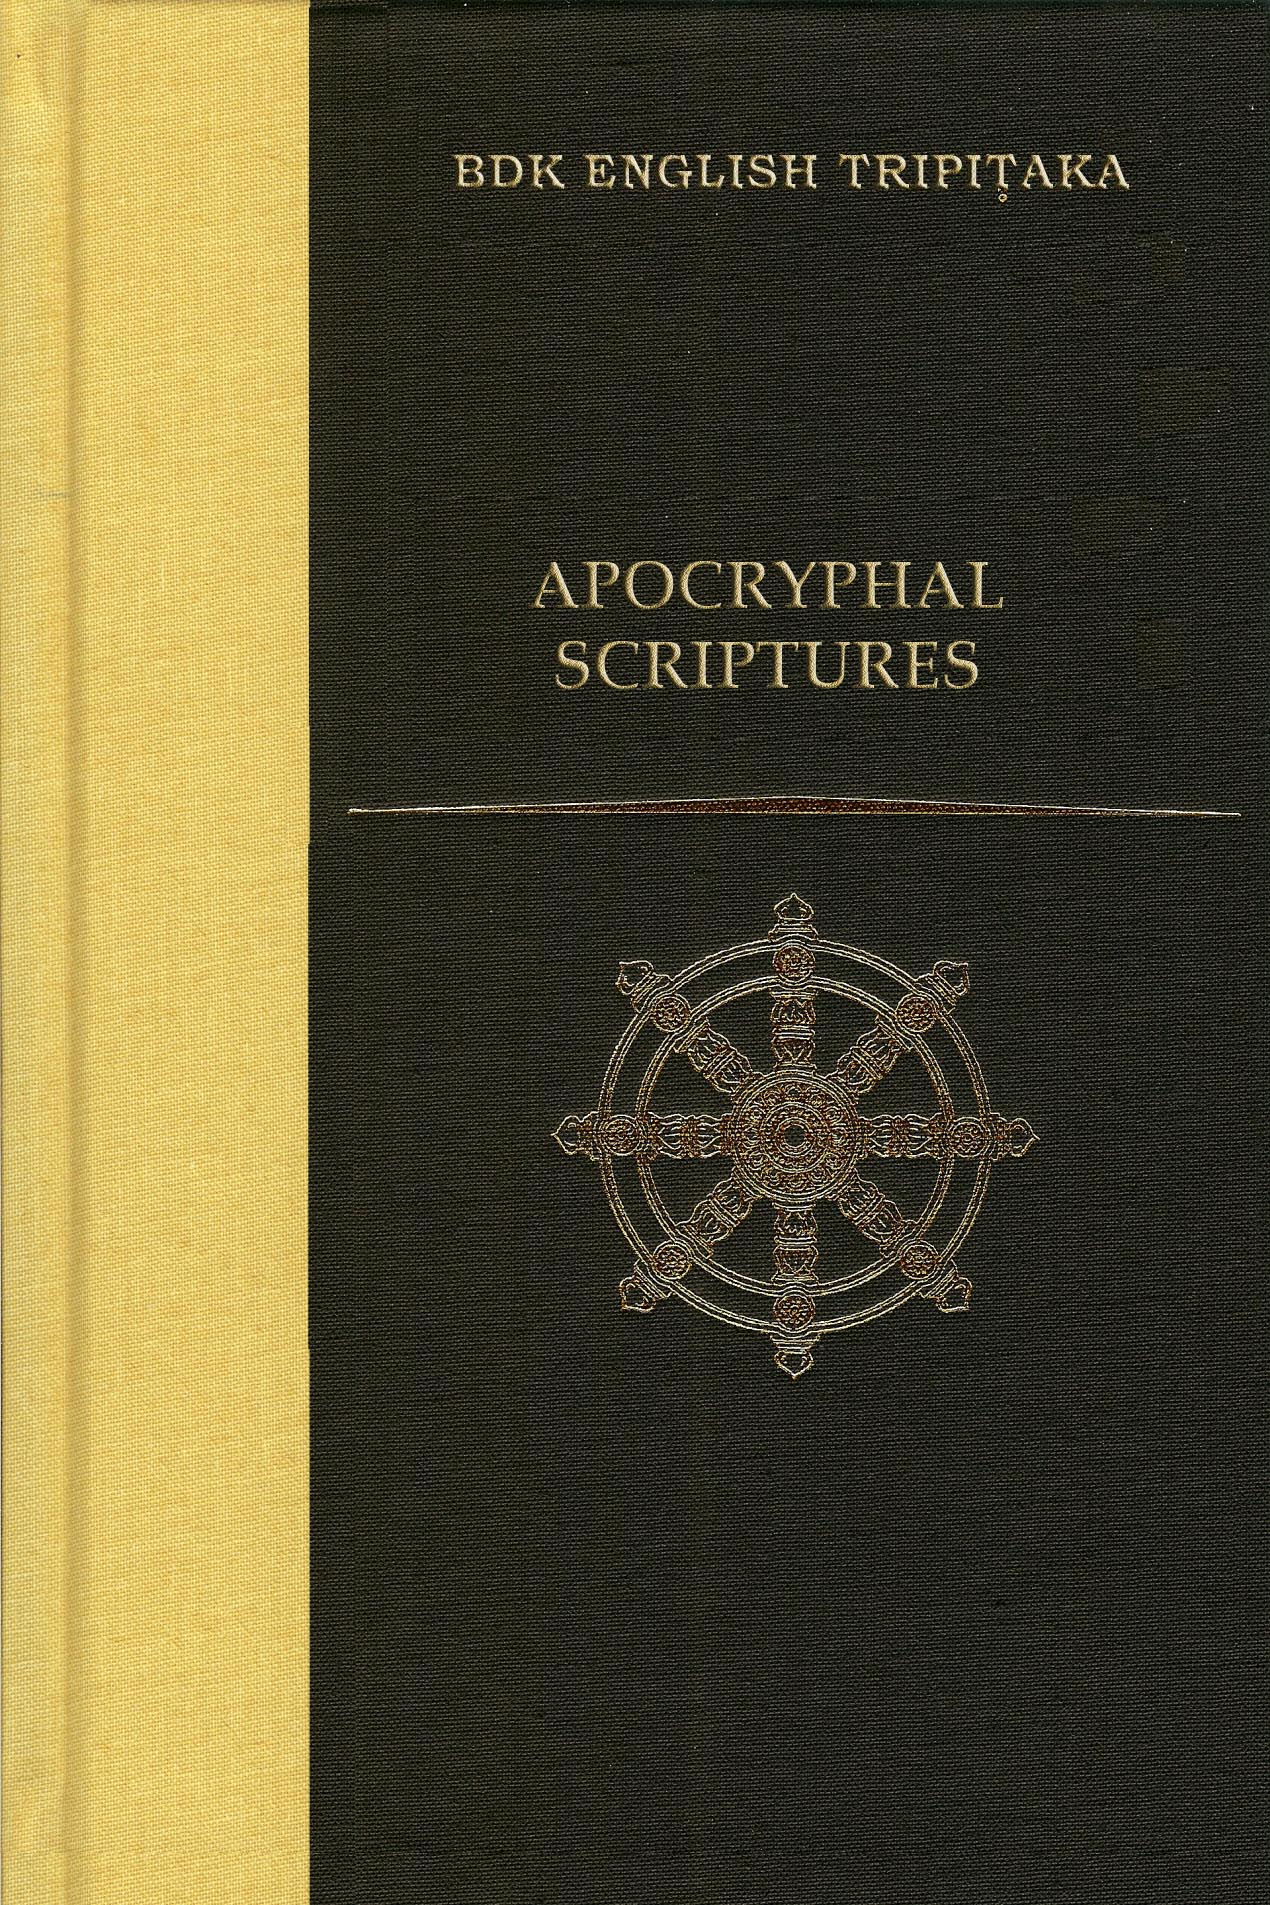 Cleary Apocryphal Scriptures cover art